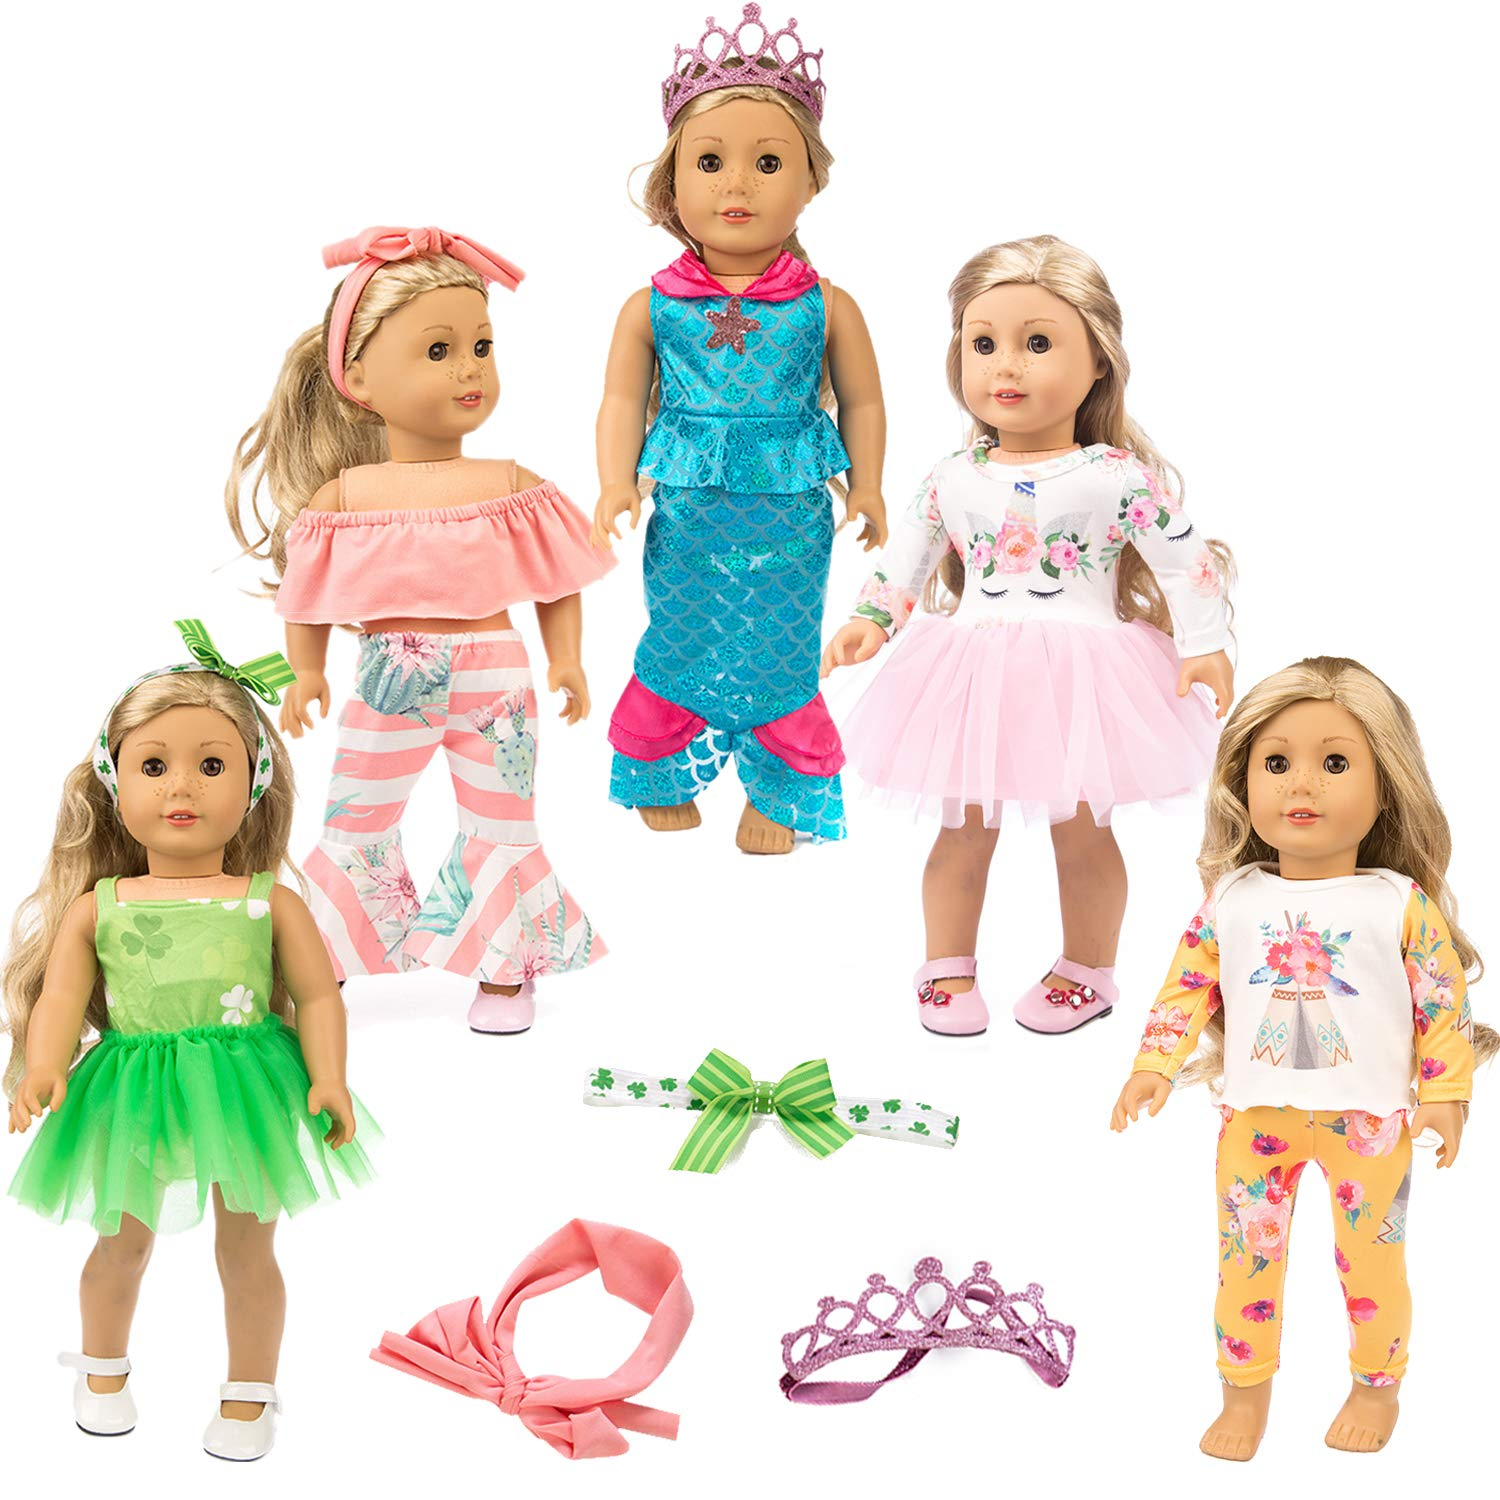 ZITA ELEMENT 11 Pcs Clothes Outfits for American 18 inch Girl Doll Cosplay | Unicorn Pattern Dress, Indian Style Pajamas, Strapless Clothes, Clover Skirt, Mermaid Outfits for 18' Dolls